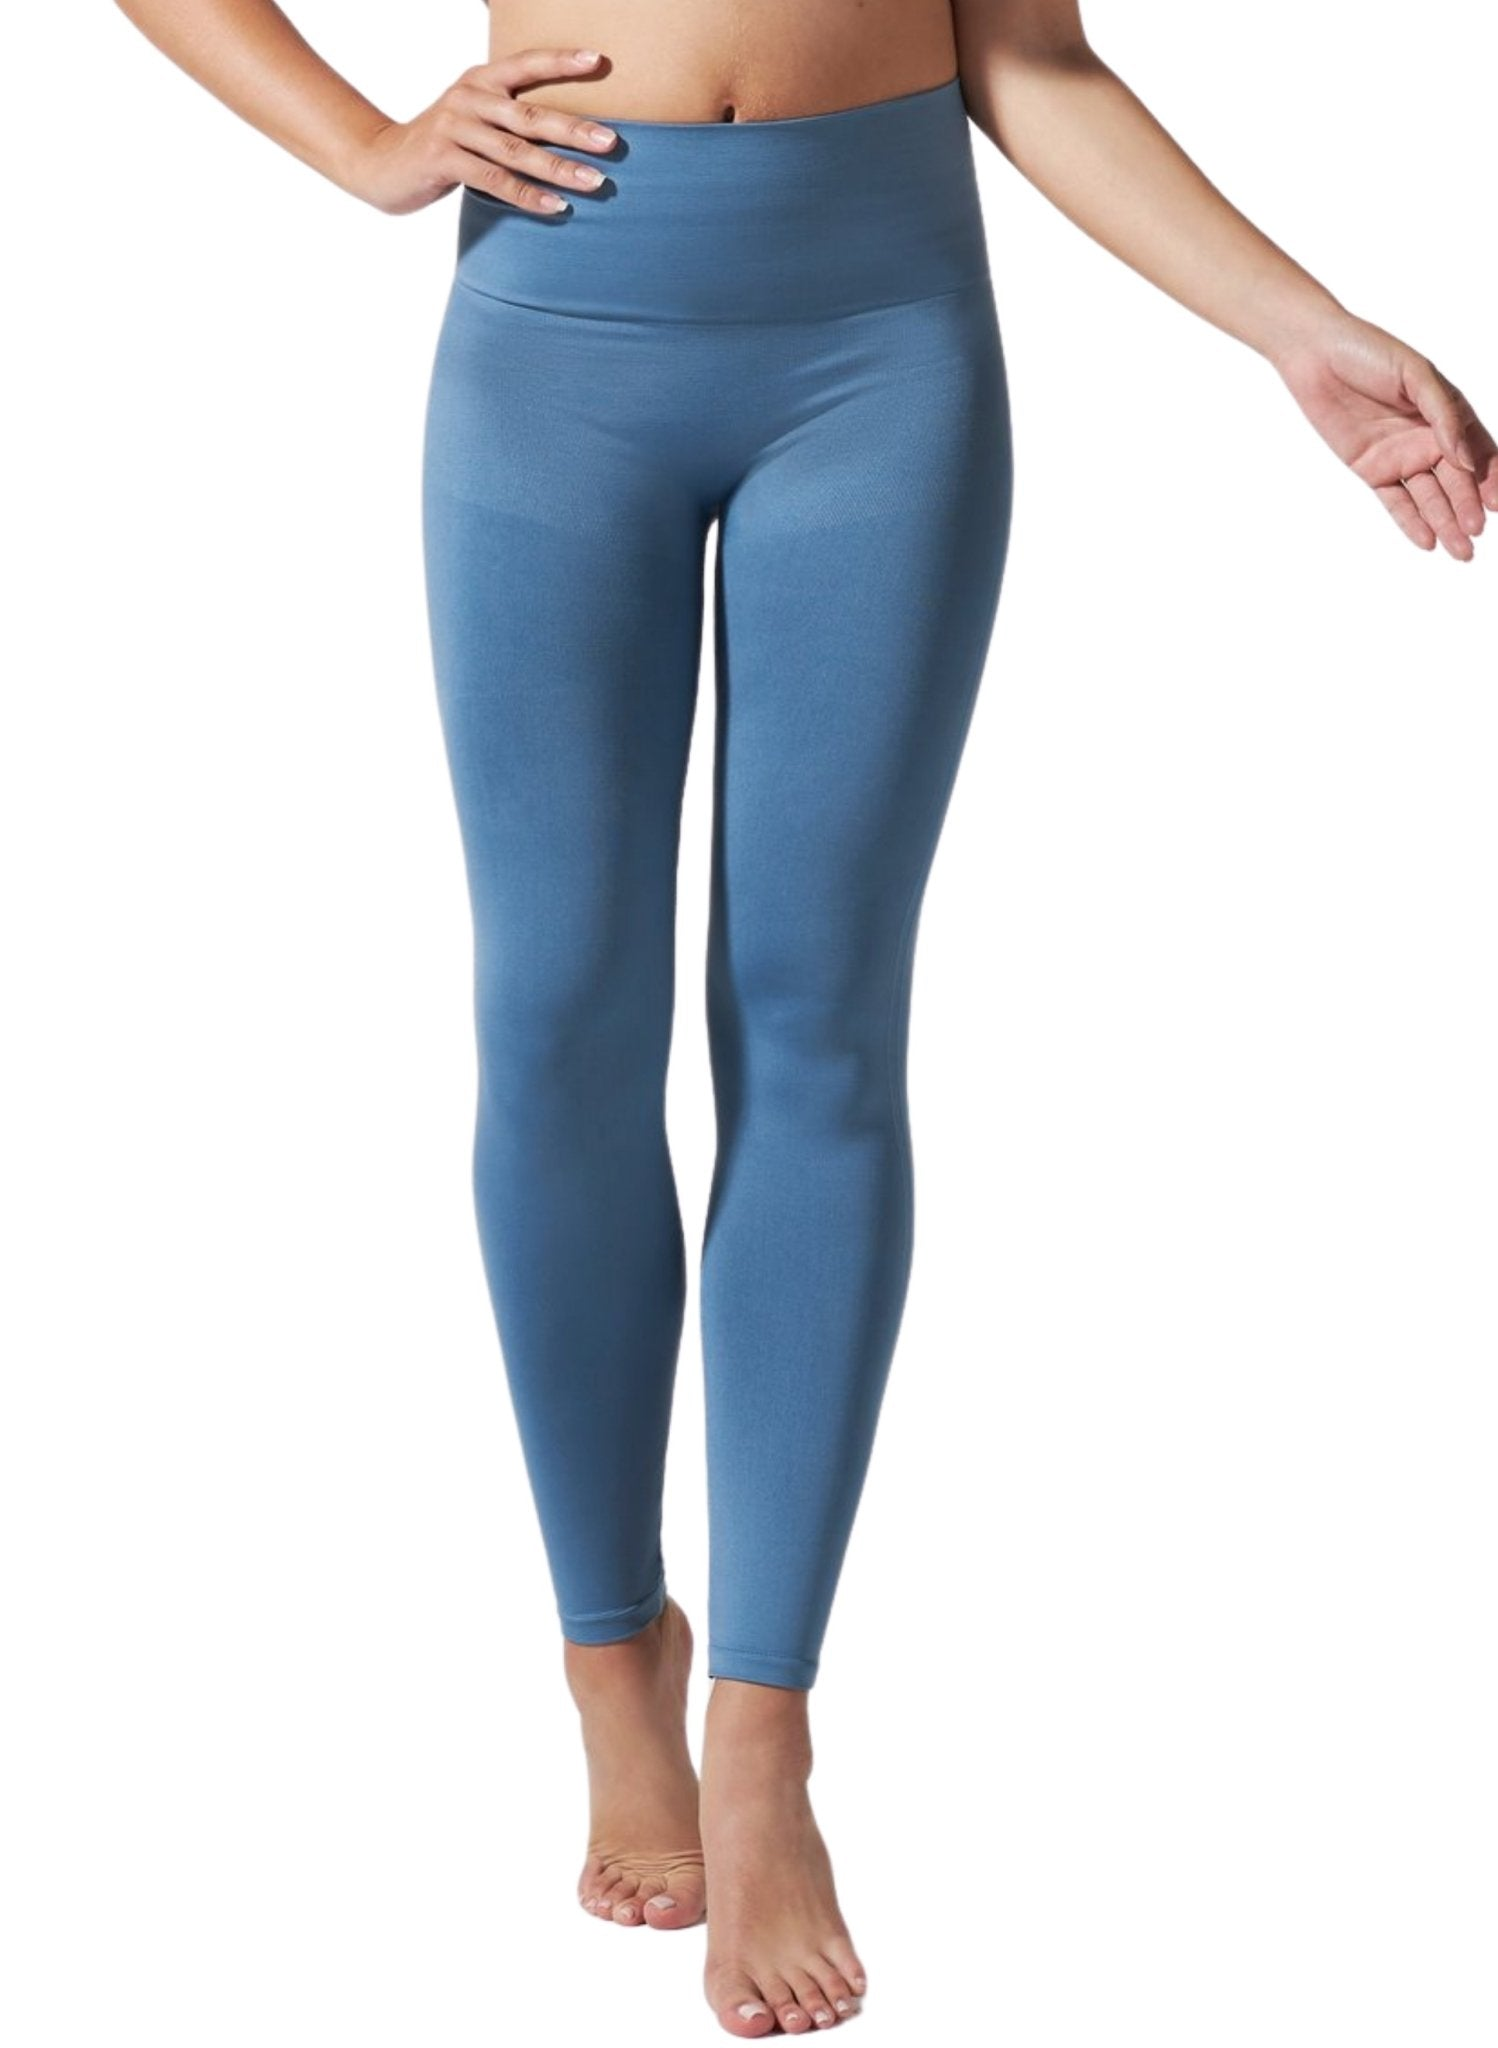 BLANQI Hipster Postpartum Support Leggings - Oil Blue - Mums and Bumps